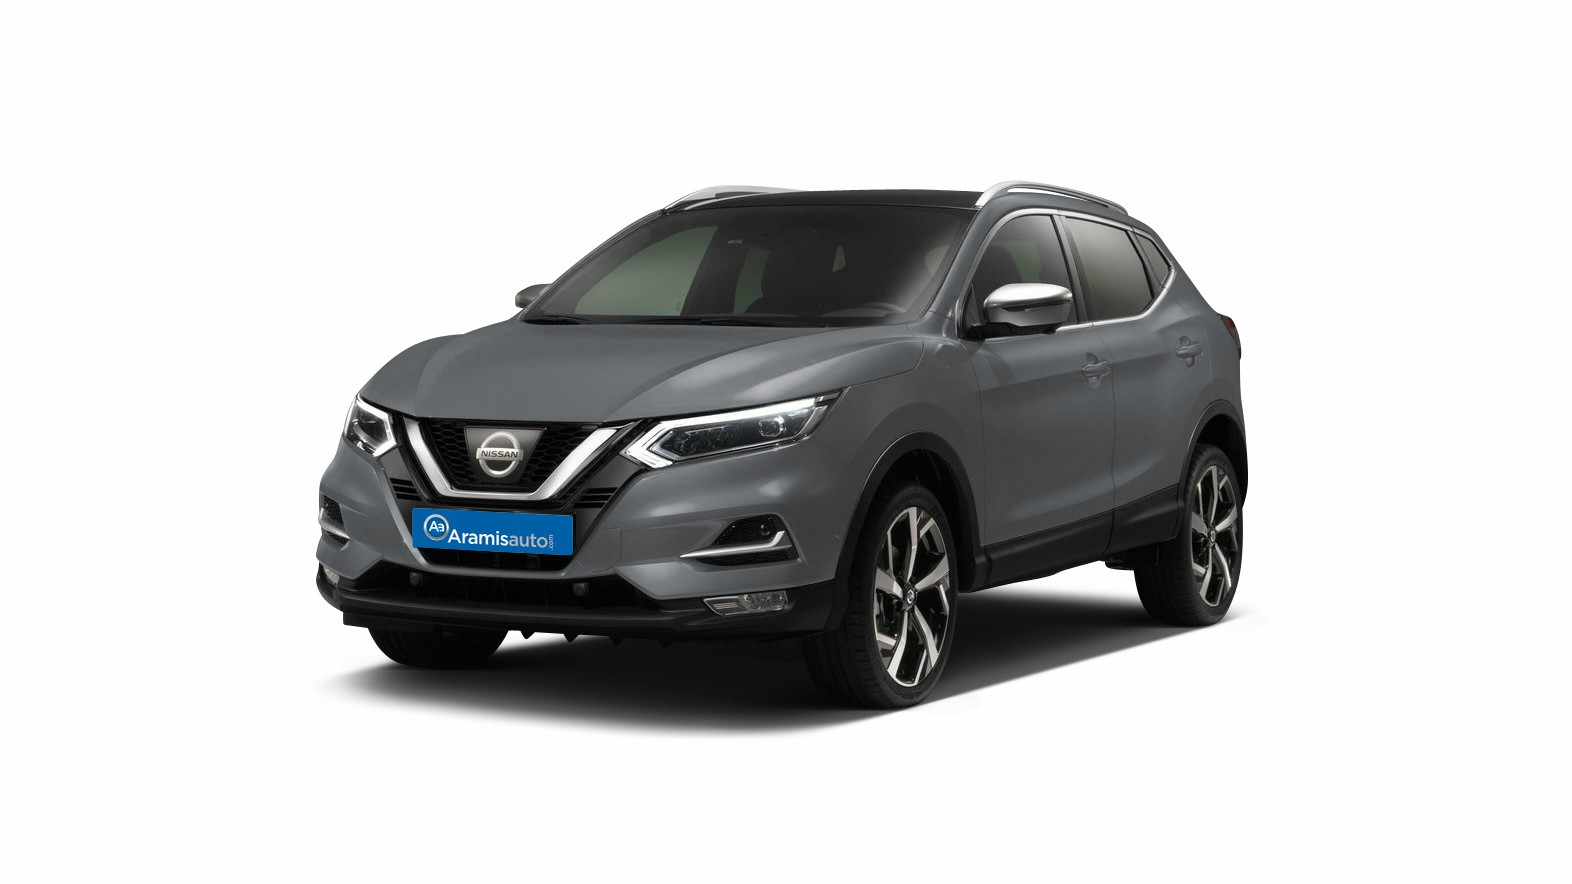 nissan qashqai nouveau 4x2 et suv 5 portes diesel 1 6 dci 130 bo te manuelle. Black Bedroom Furniture Sets. Home Design Ideas